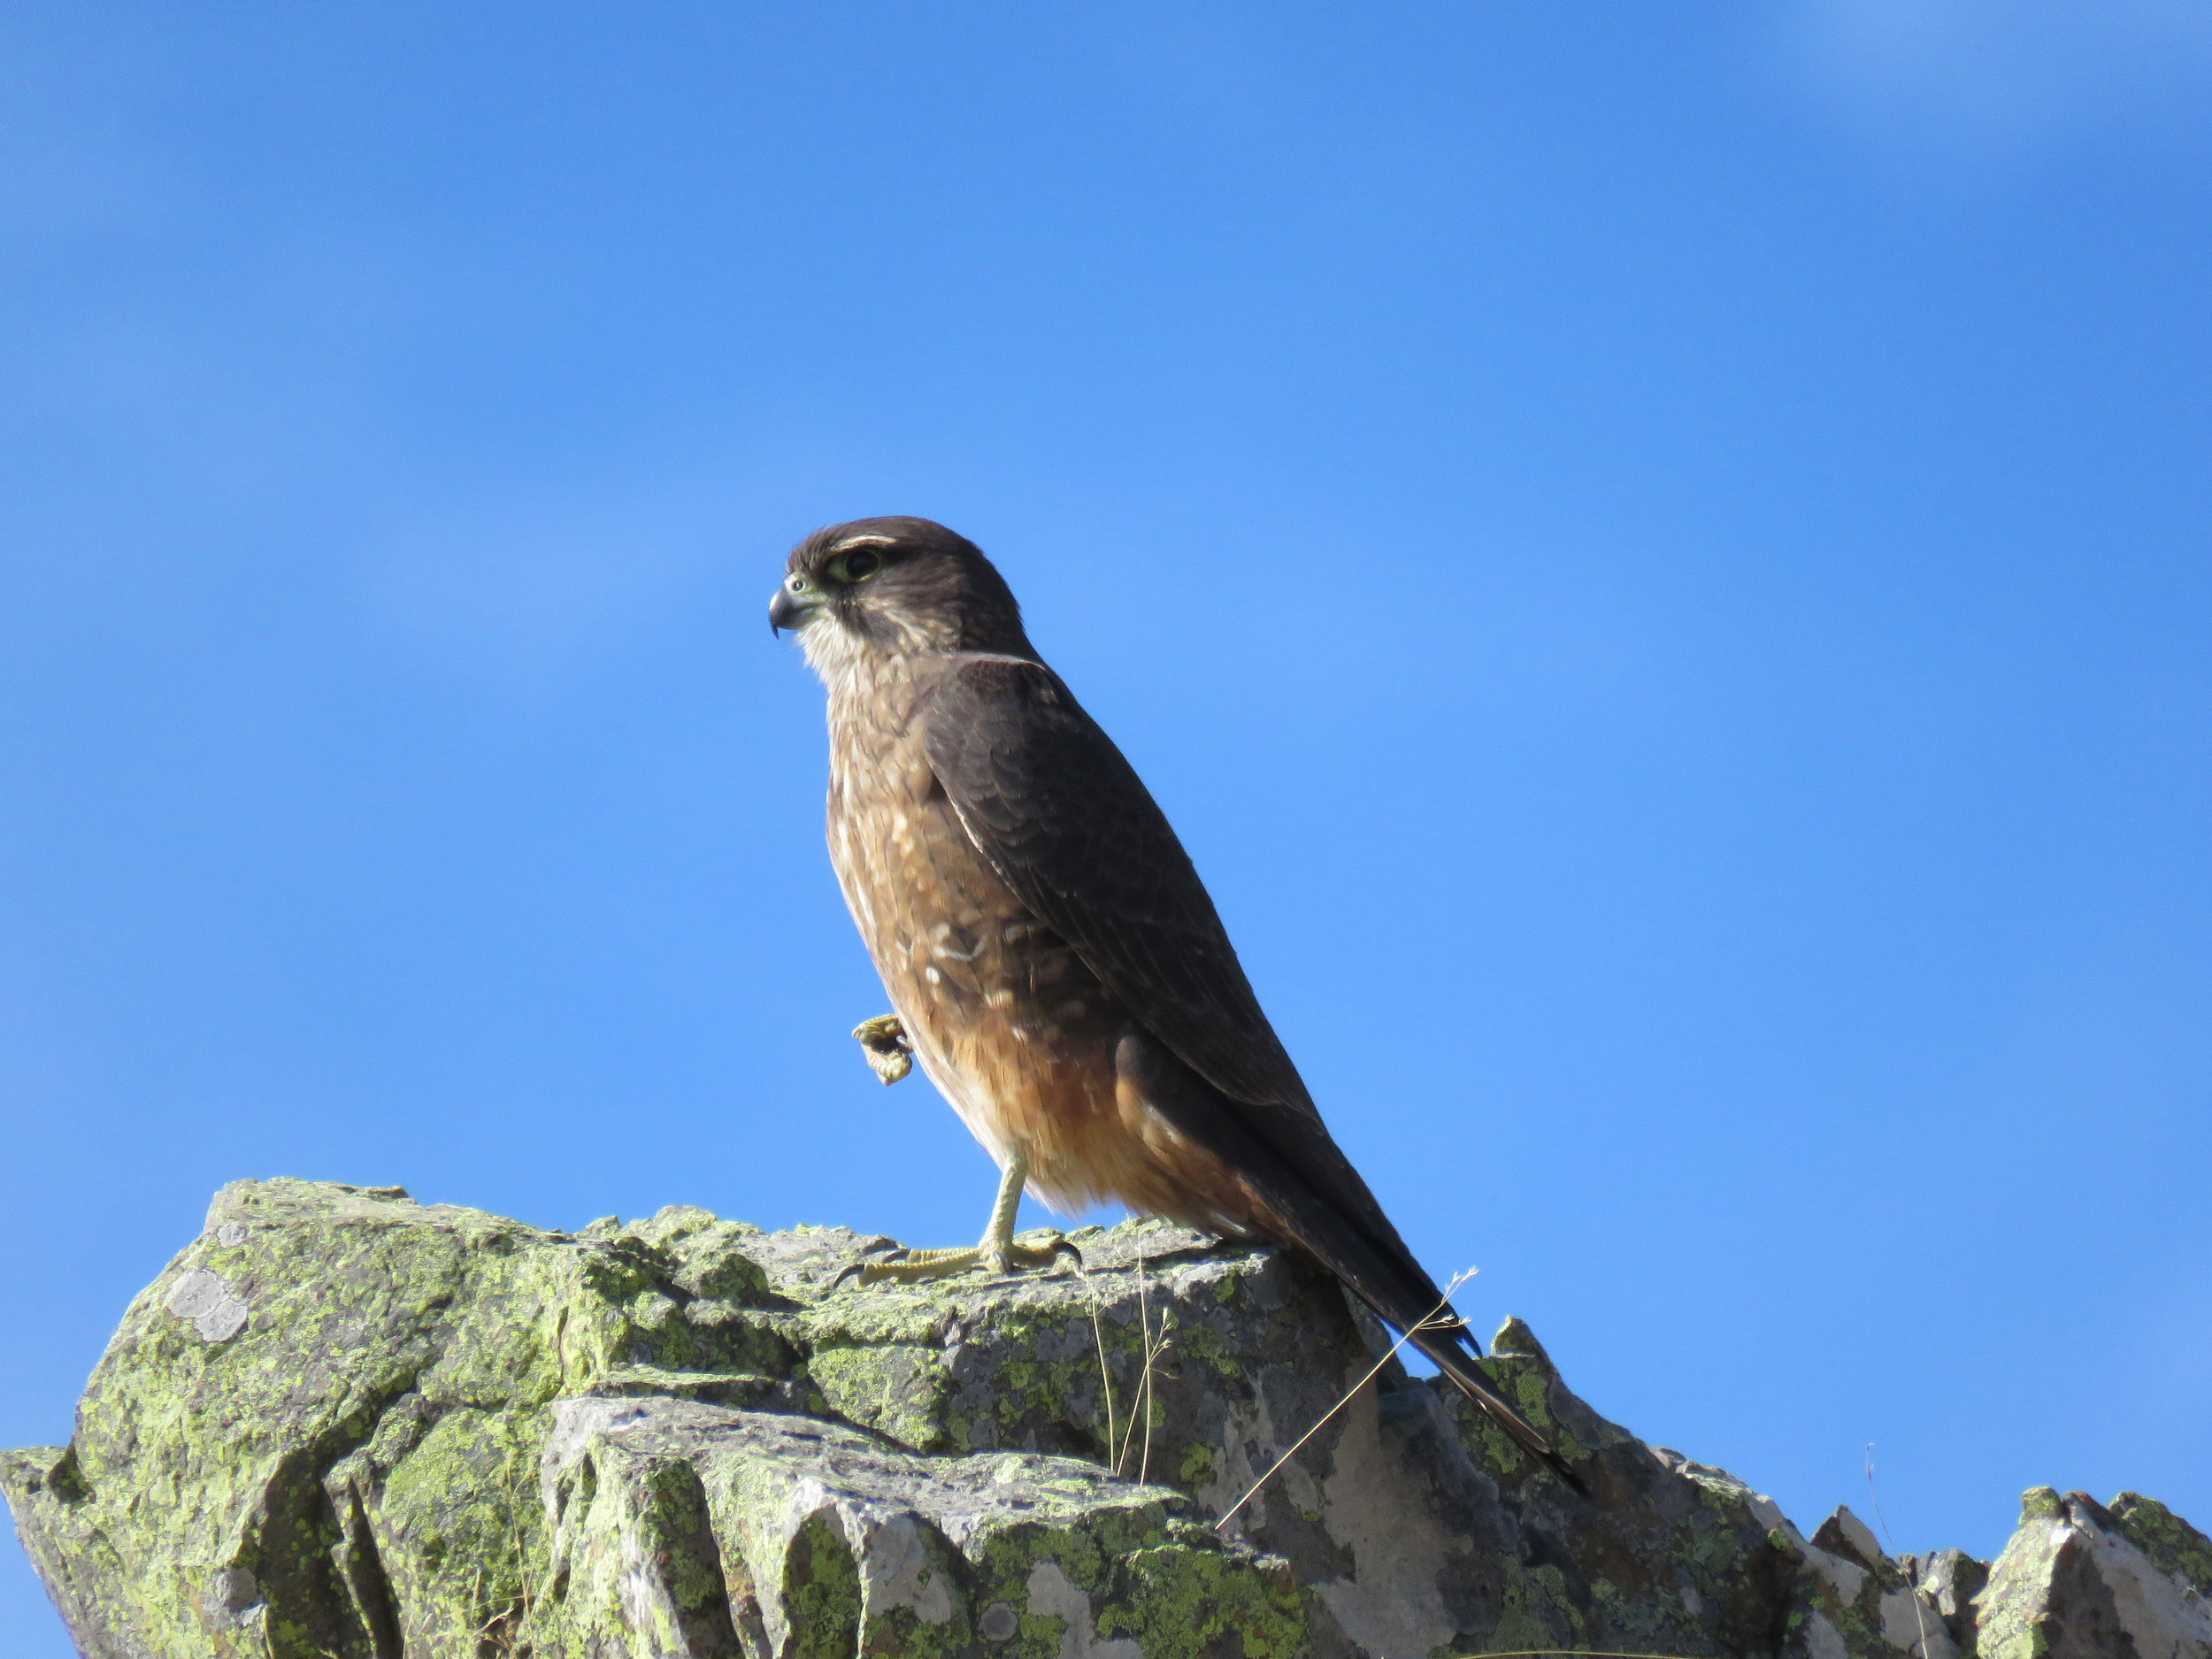 A New Zealand Falcon happy to be photographed from the window of the Hilux.